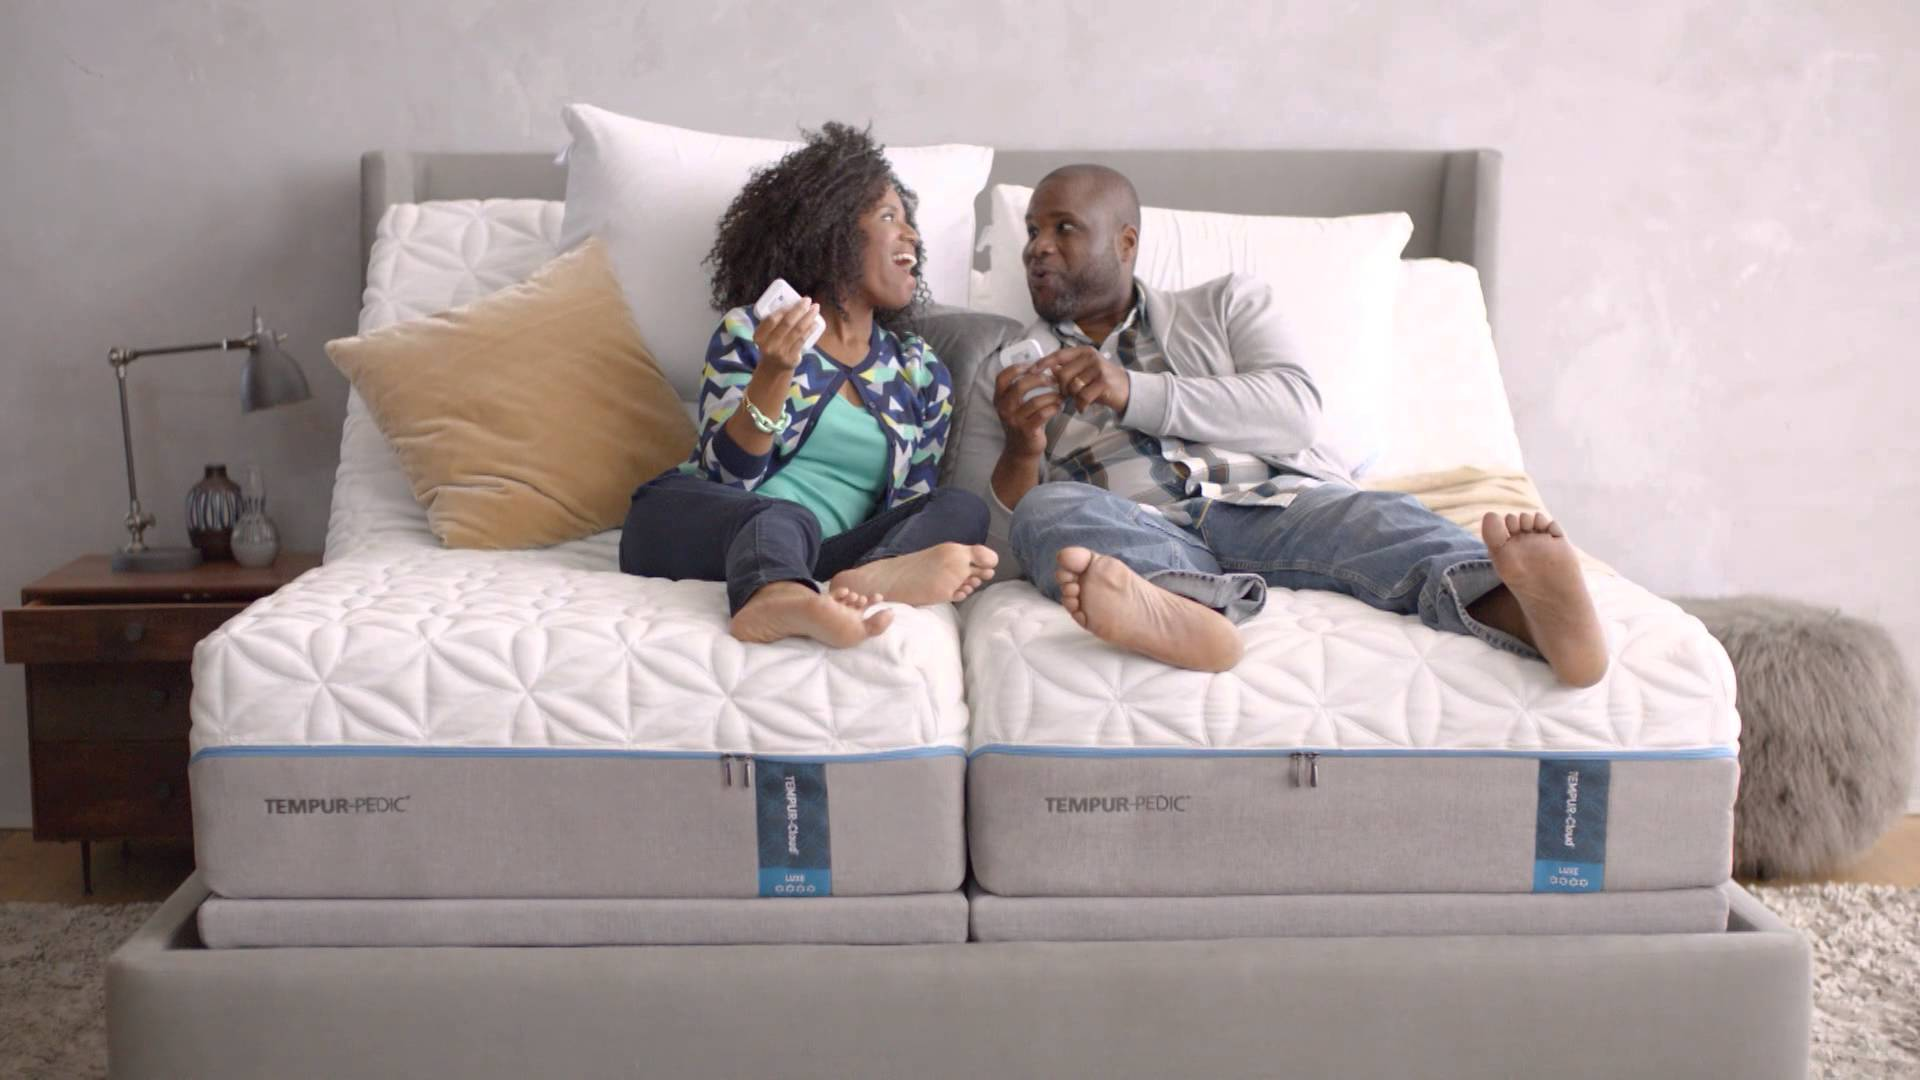 Theres Nothing Like My TempurPedic Commercial Song